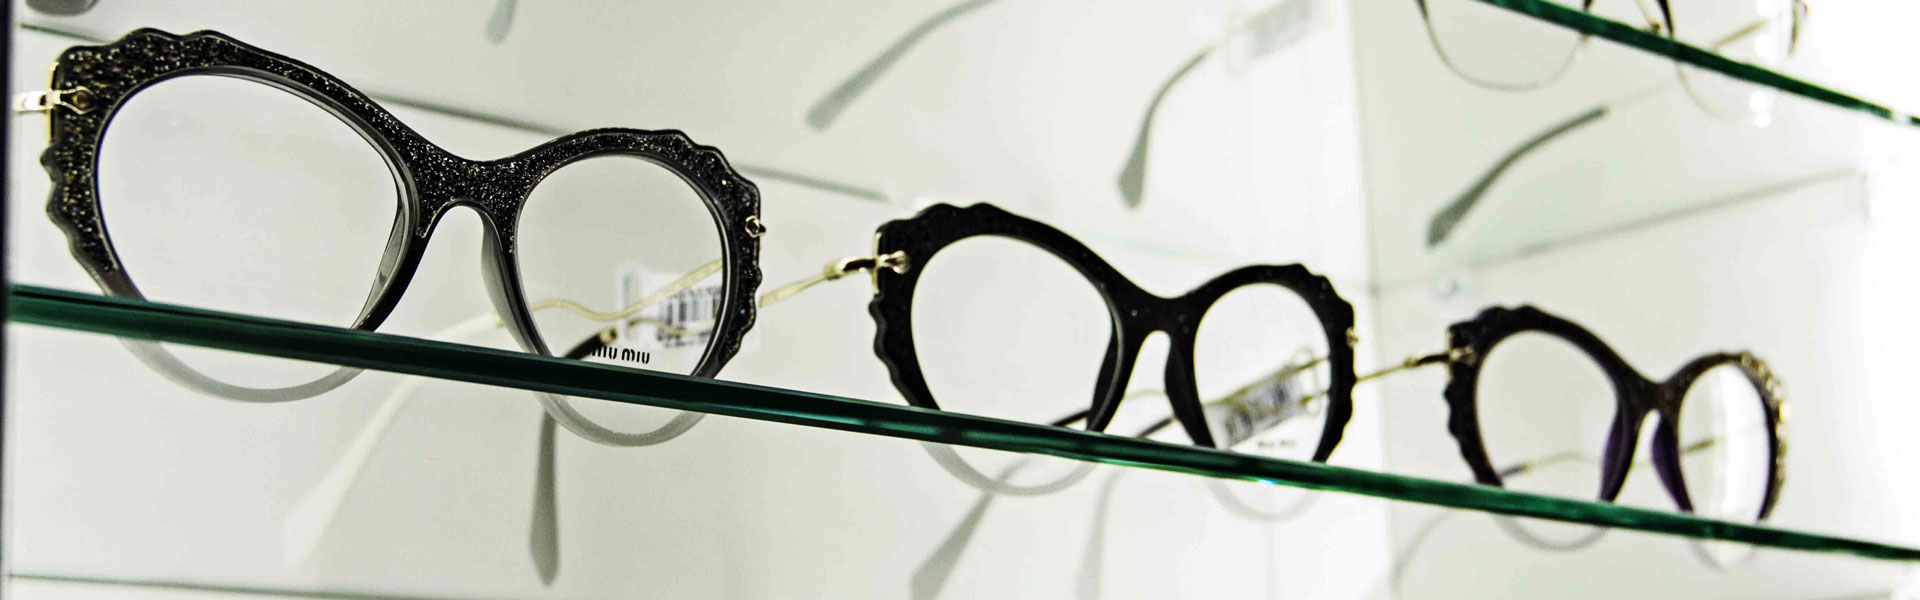 Boutique dell'eyewear - Lama Optical